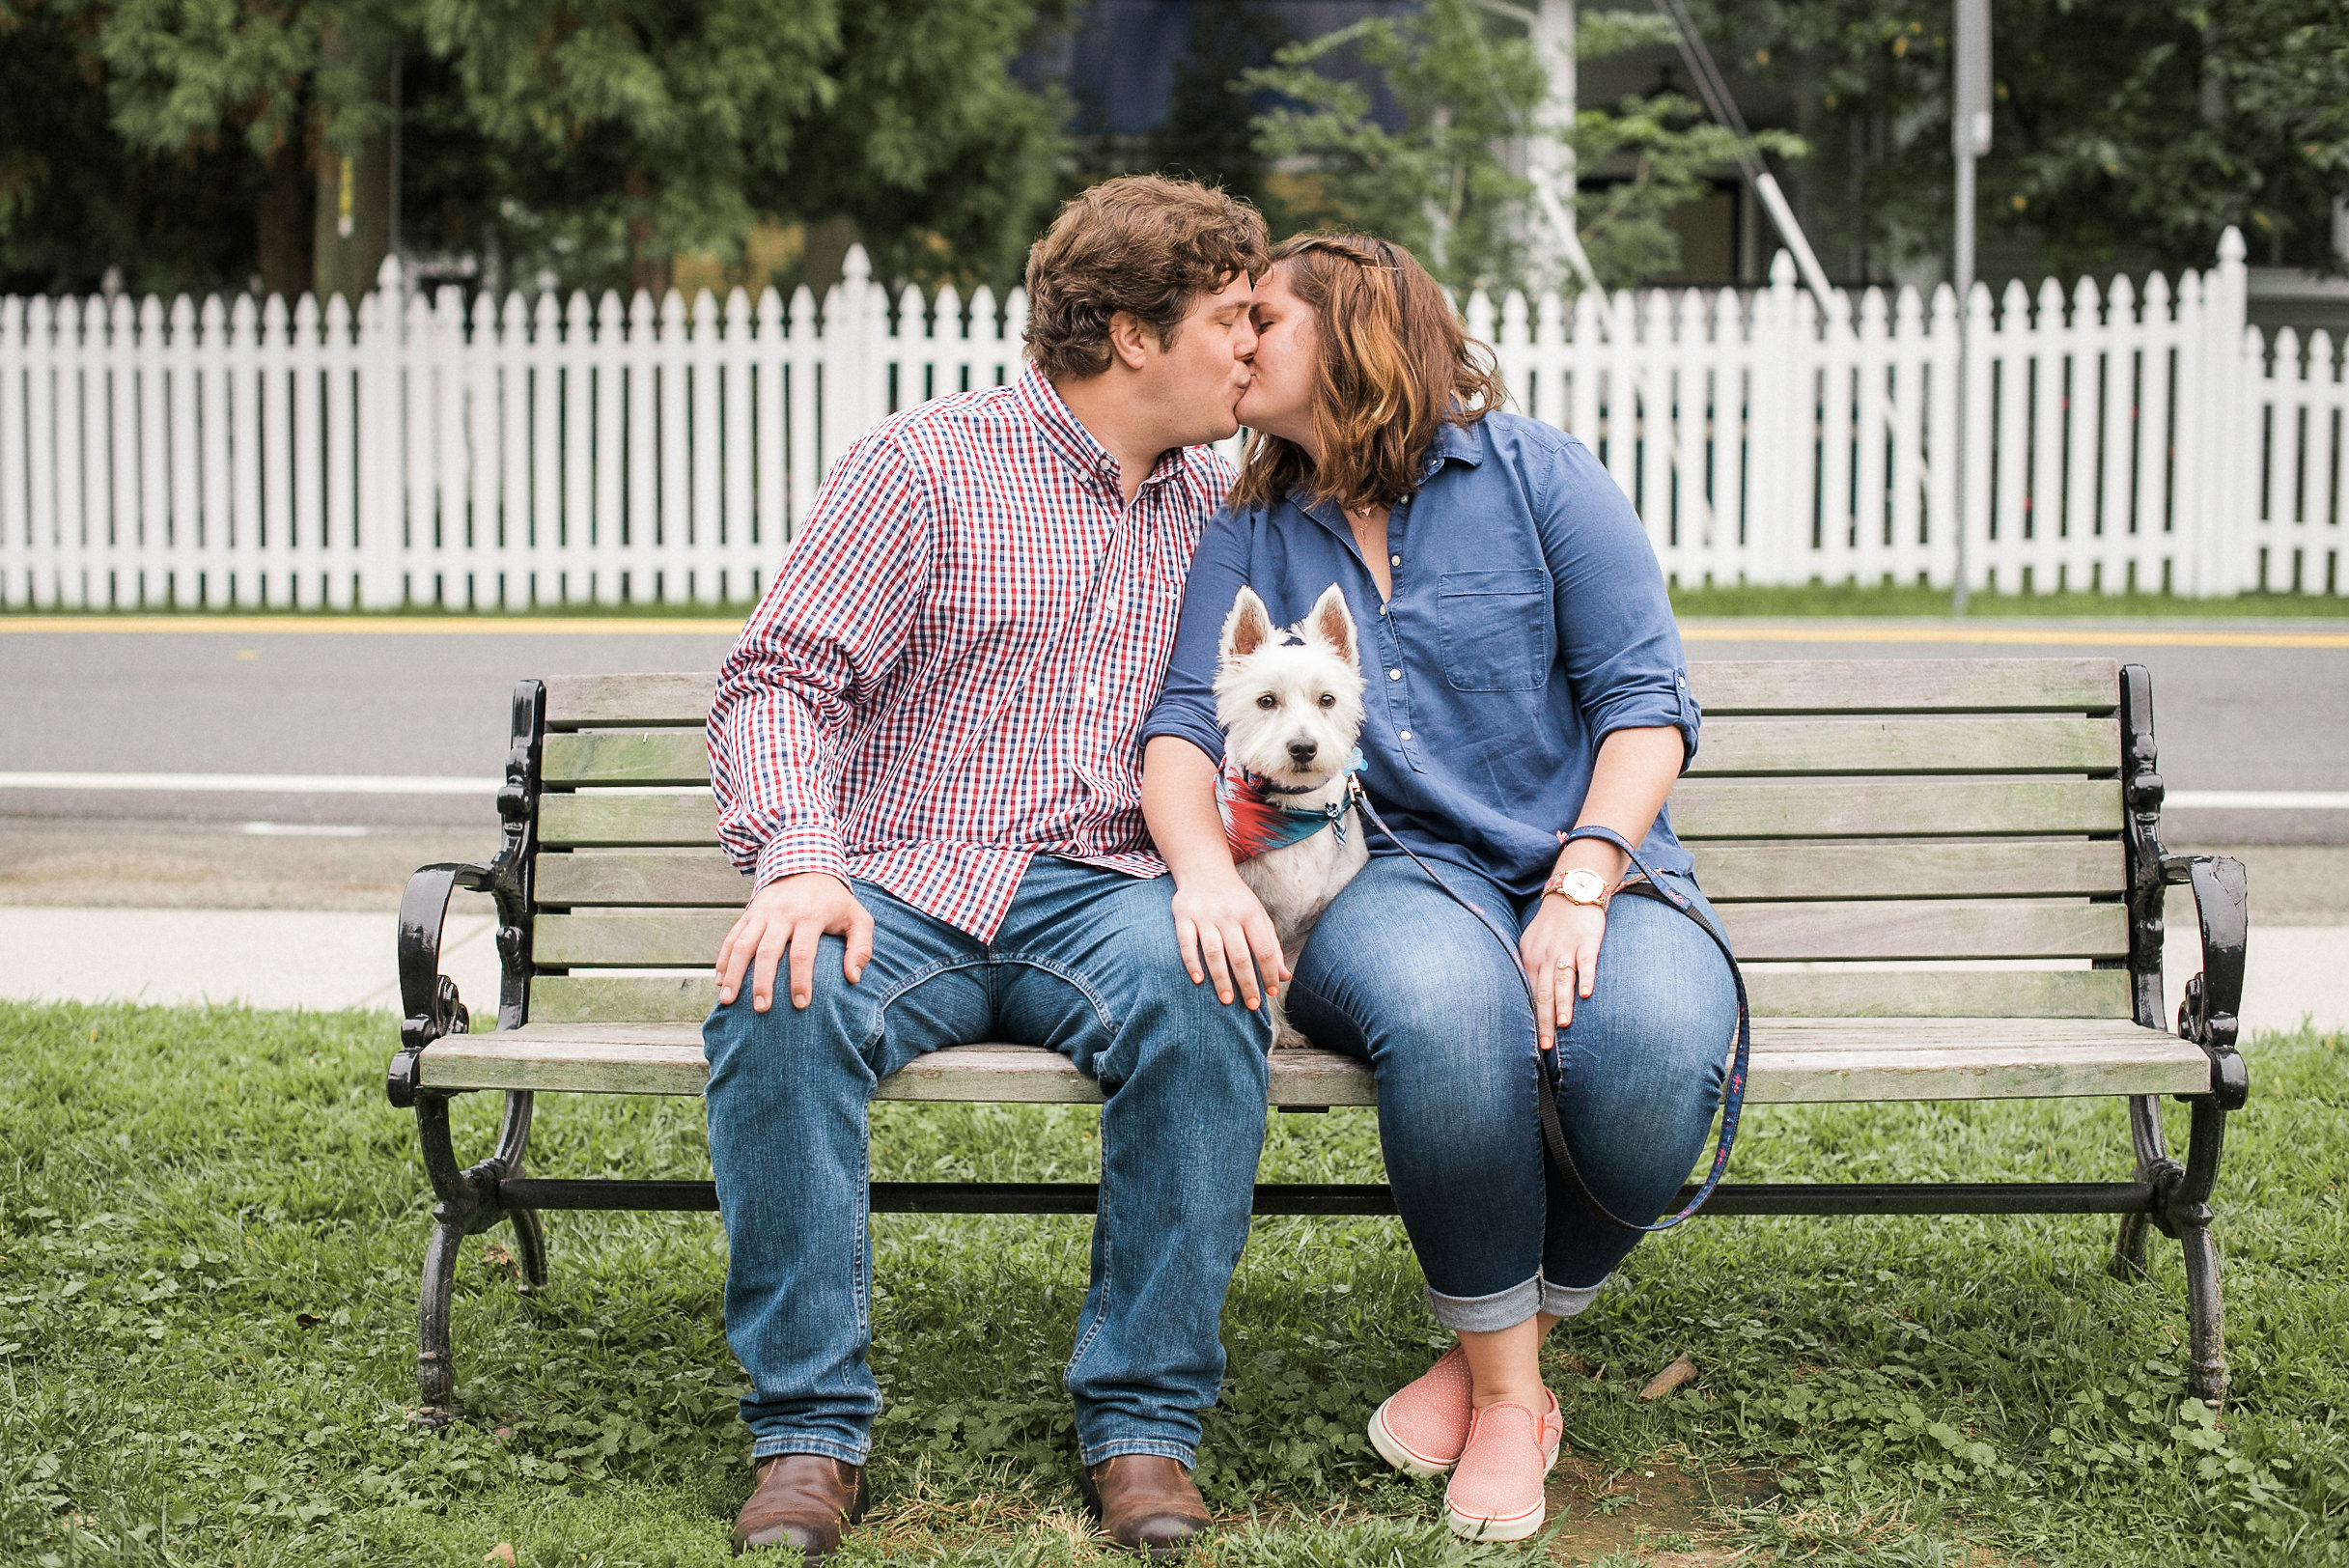 Couple kissing on bench with dog